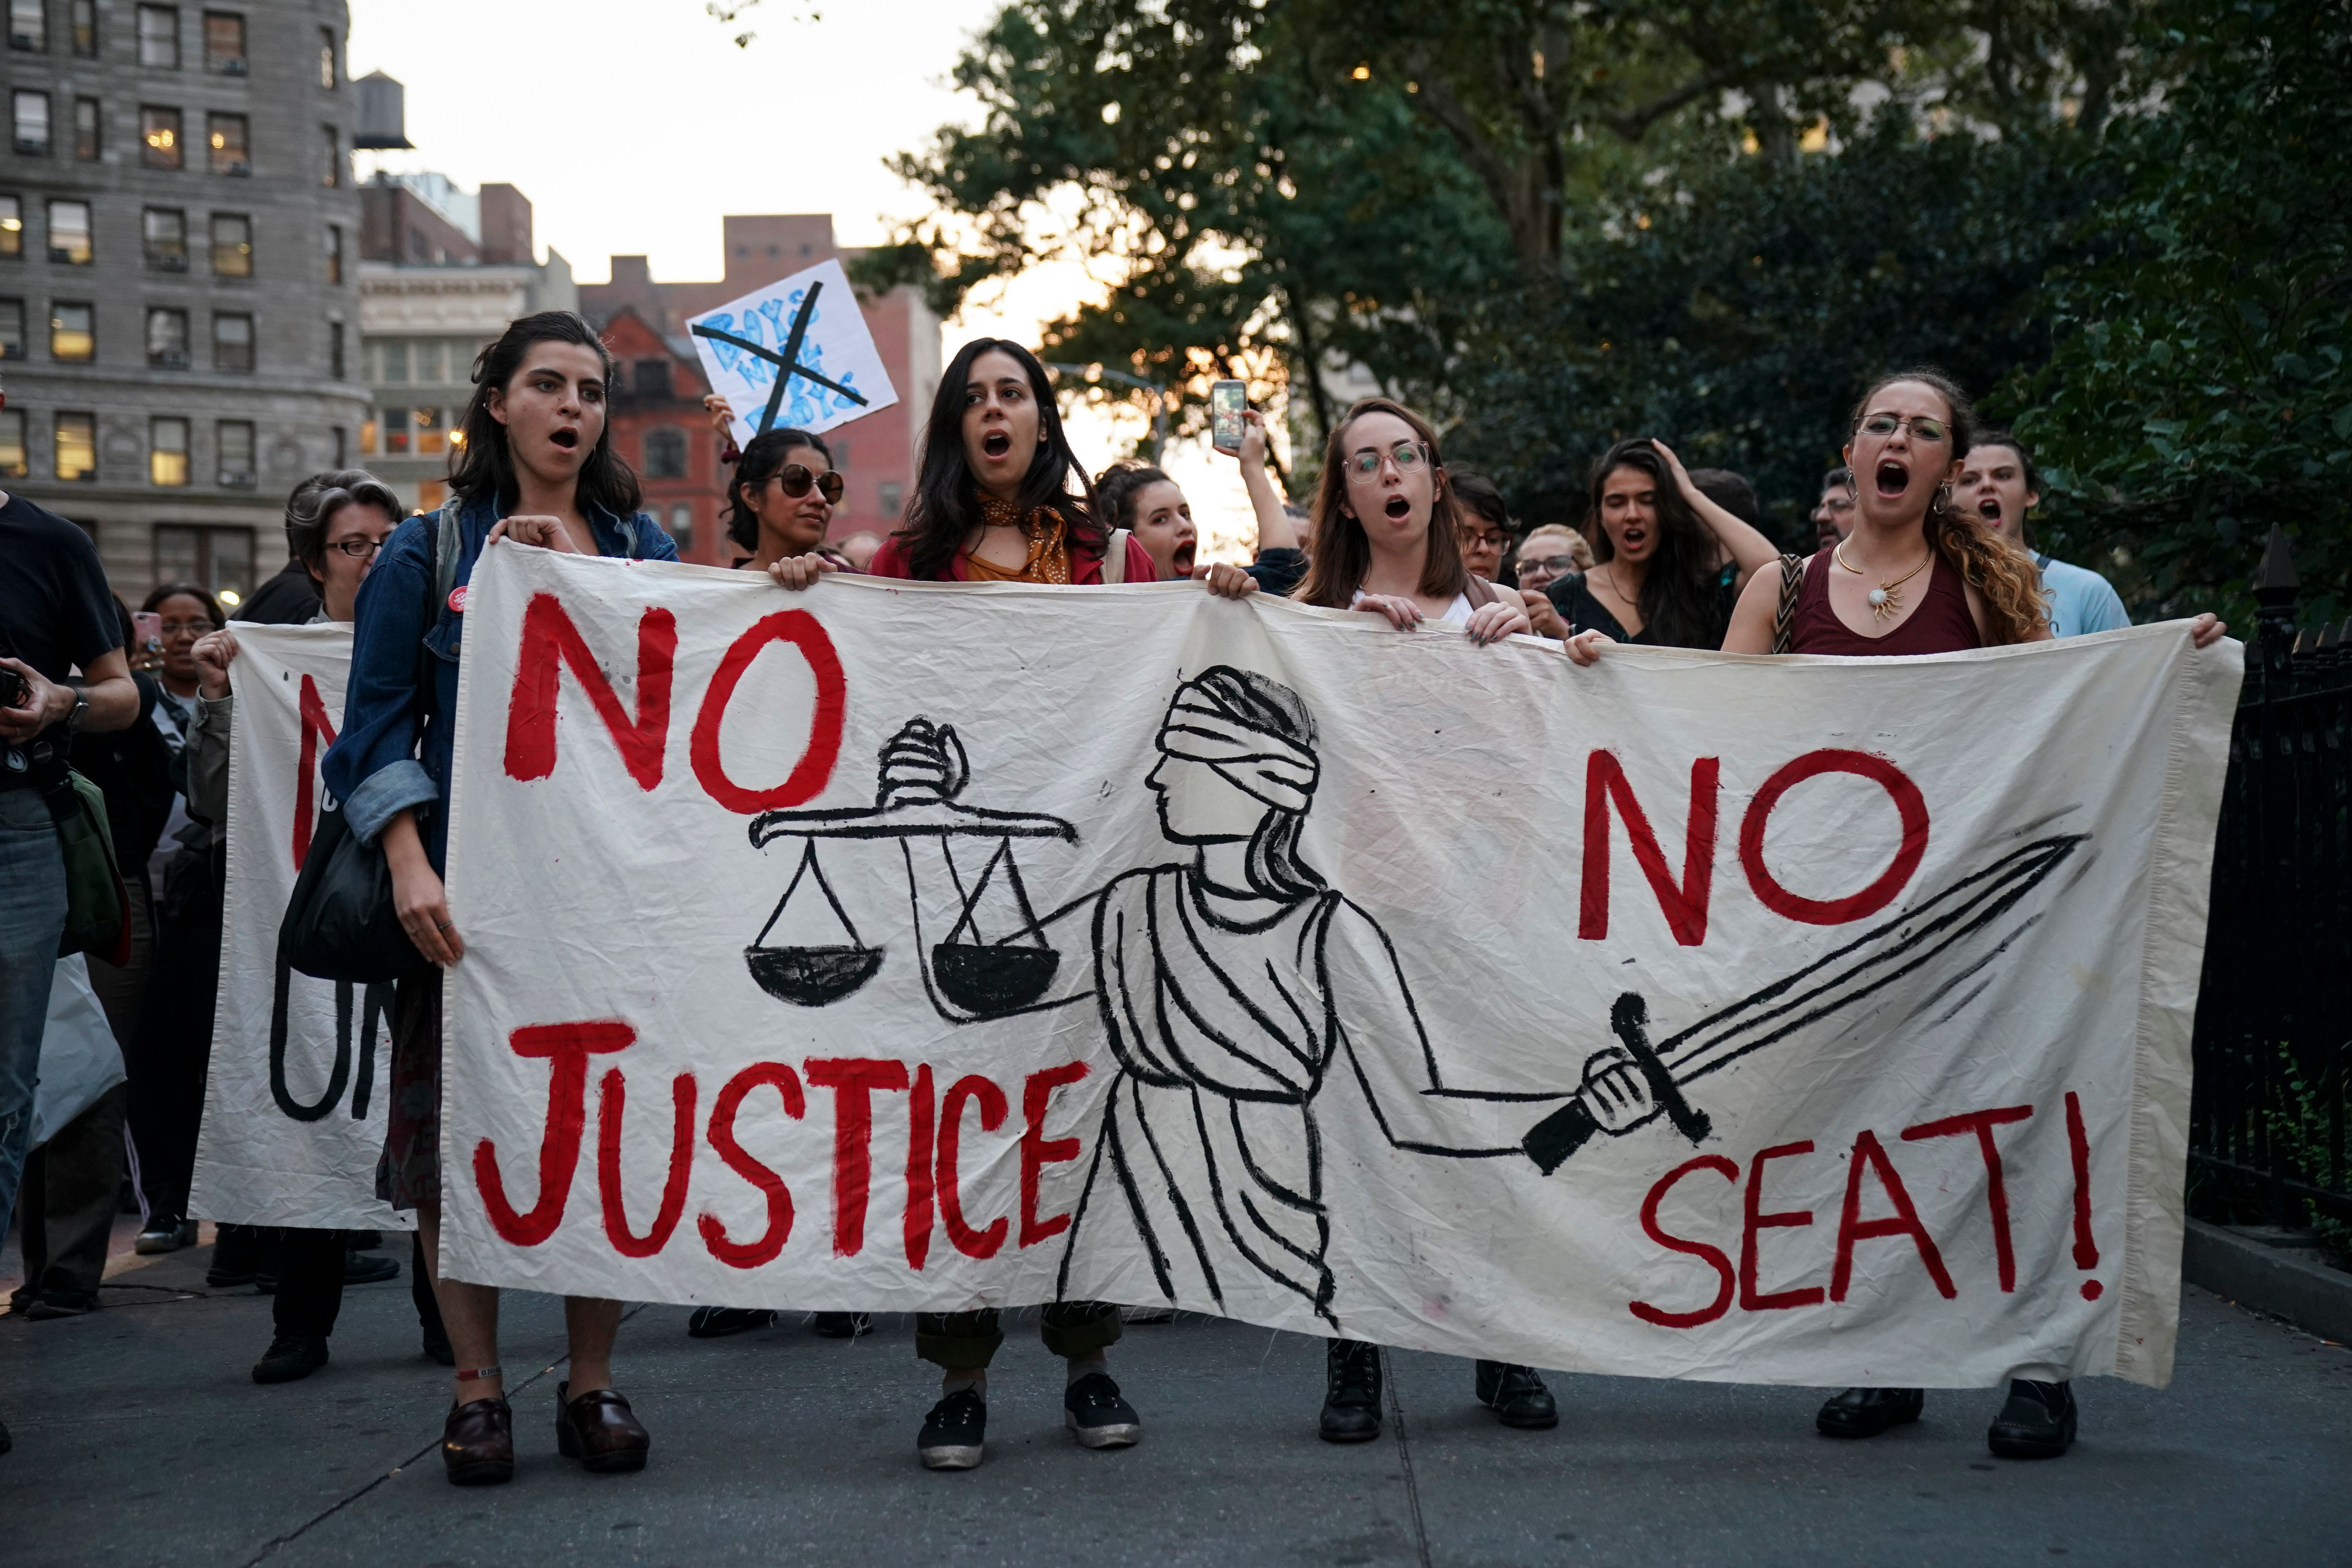 NEW YORK, NY - OCTOBER 1: Protestors rally against Supreme Court nominee Judge Brett Kavanaugh near Madison Square Park, October 1, 2018 in New York City. Following White House authorization, the FBI is further investigating sexual misconduct claims against Kavanaugh. In a speech on the Senate floor on Monday afternoon, Senate Majority Leader Mitch McConnell insisted he will hold a vote on Kavanaugh's confirmation later this week. (Photo by Drew Angerer/Getty Images)